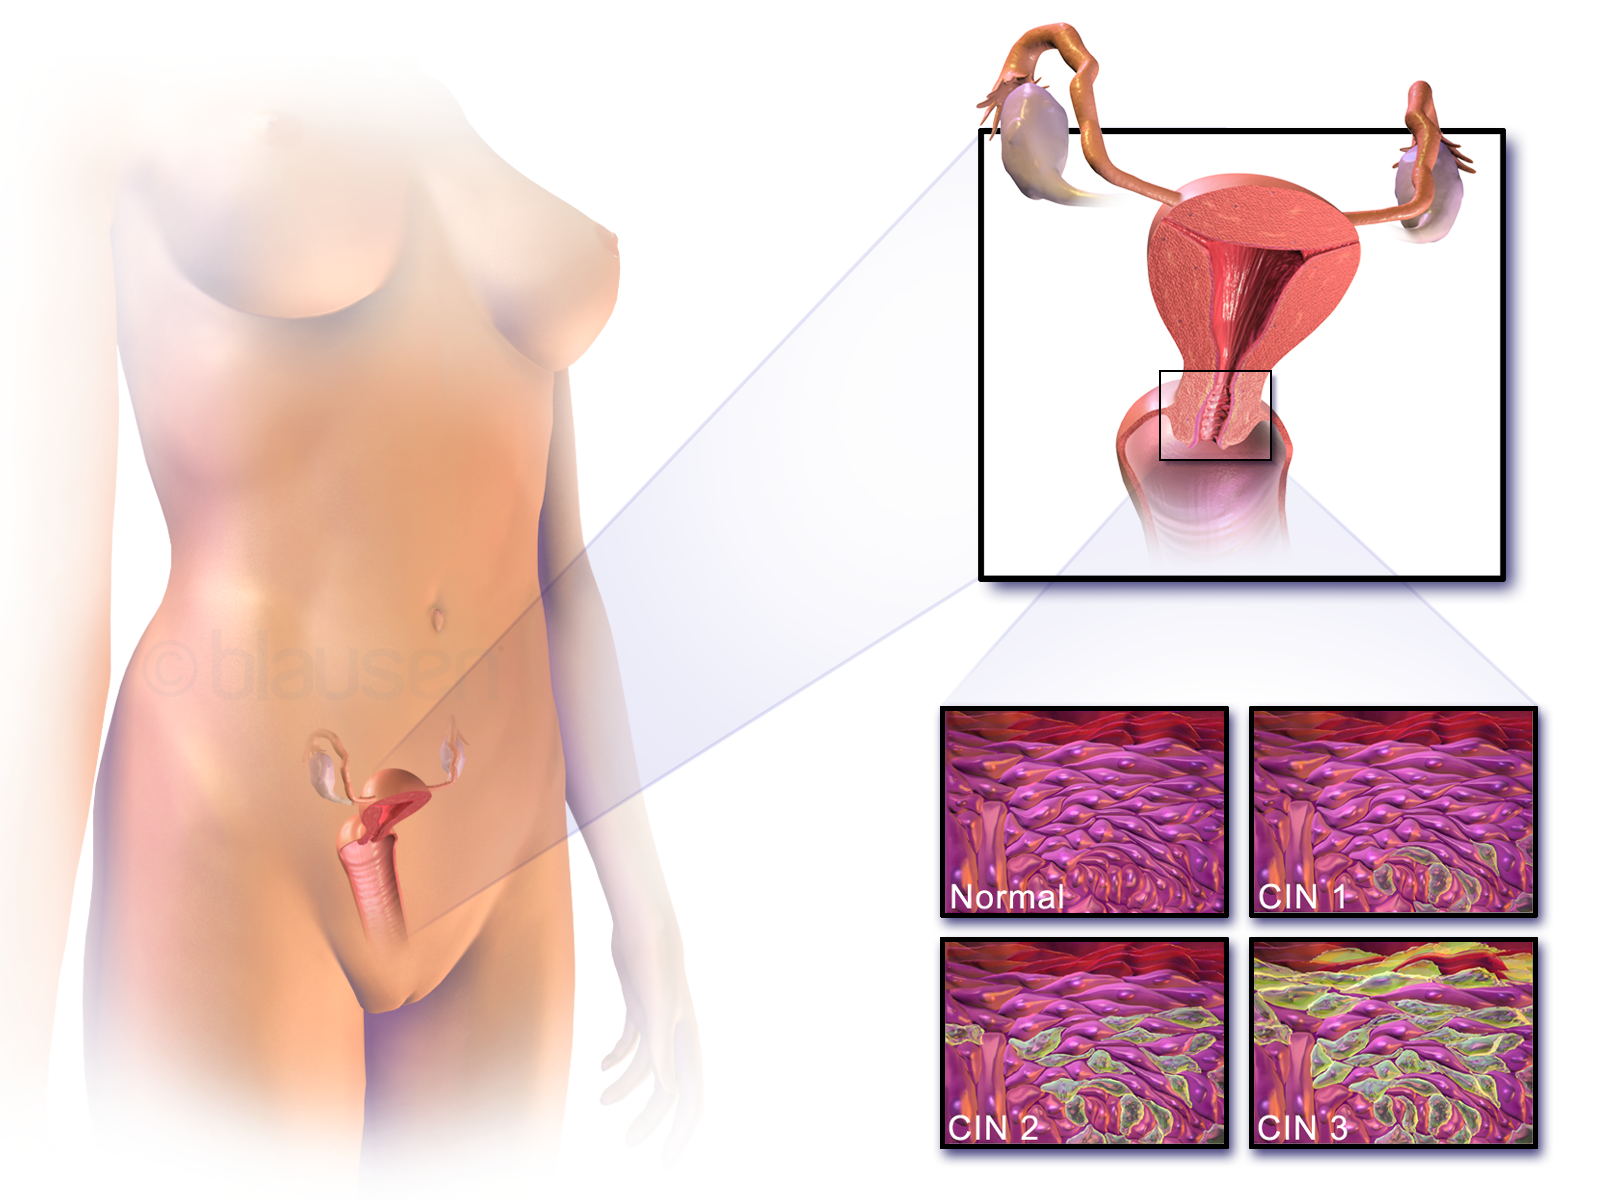 Hpv definition and symptoms. Hpv and liver cancer